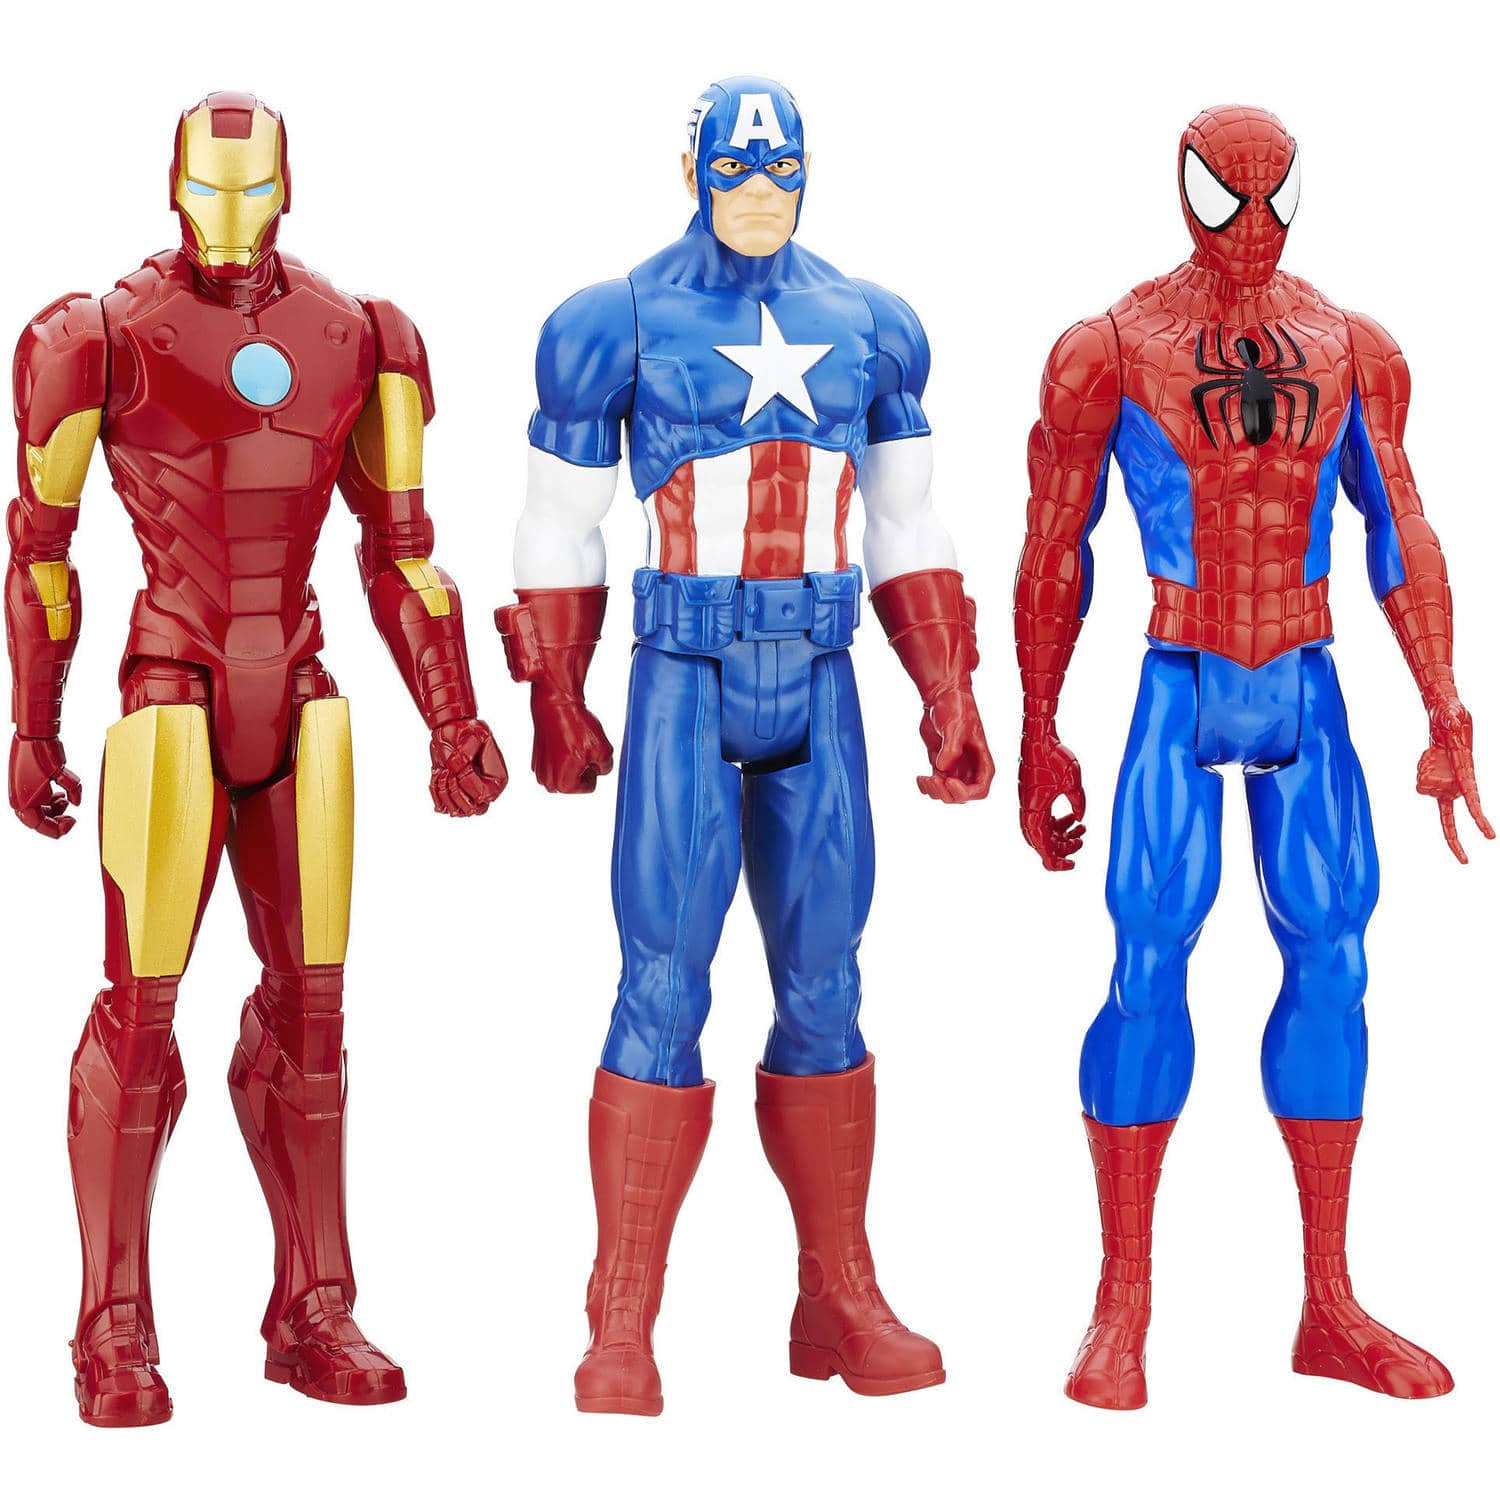 """3-Pack Marvel 12"""" Titan Hero Series Figures (Captain American, Iron Man, Spider-Man) all for $15 with free shipping"""